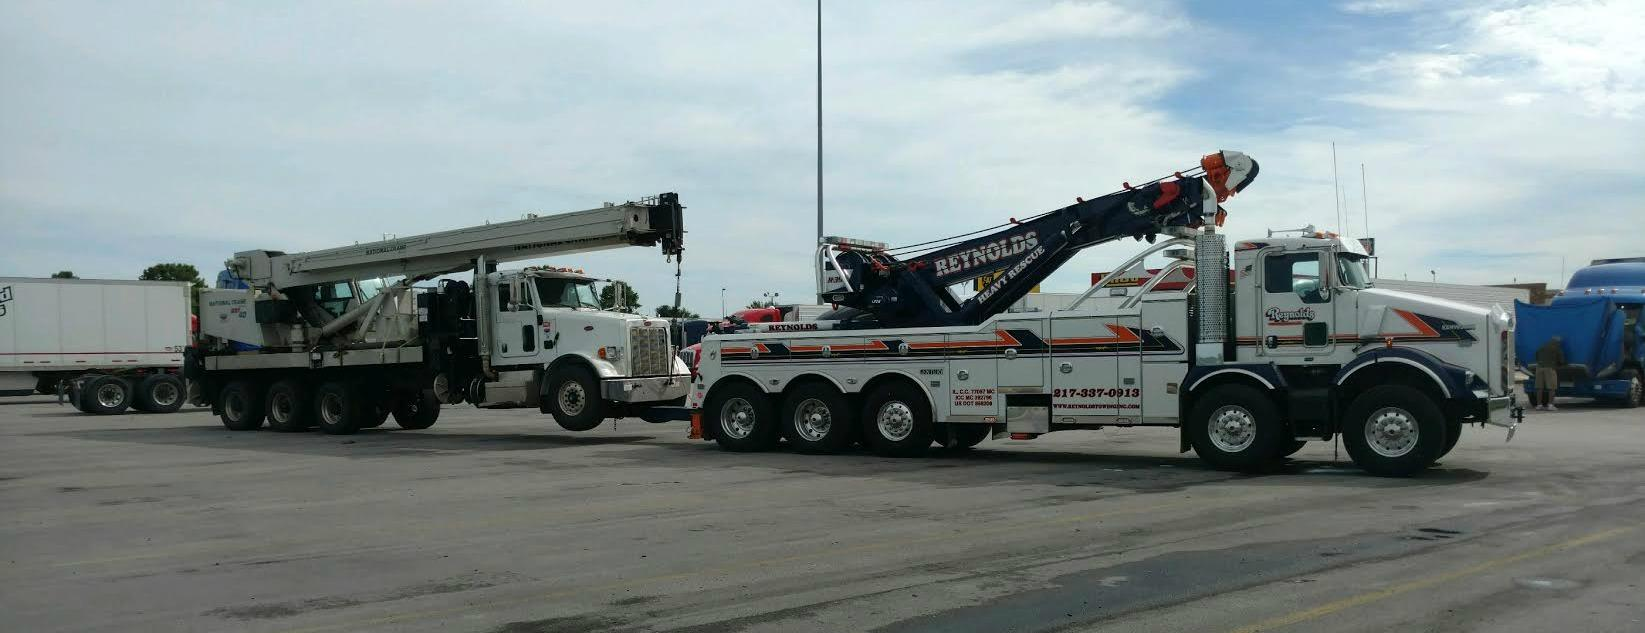 Reynolds Towing Service image 41